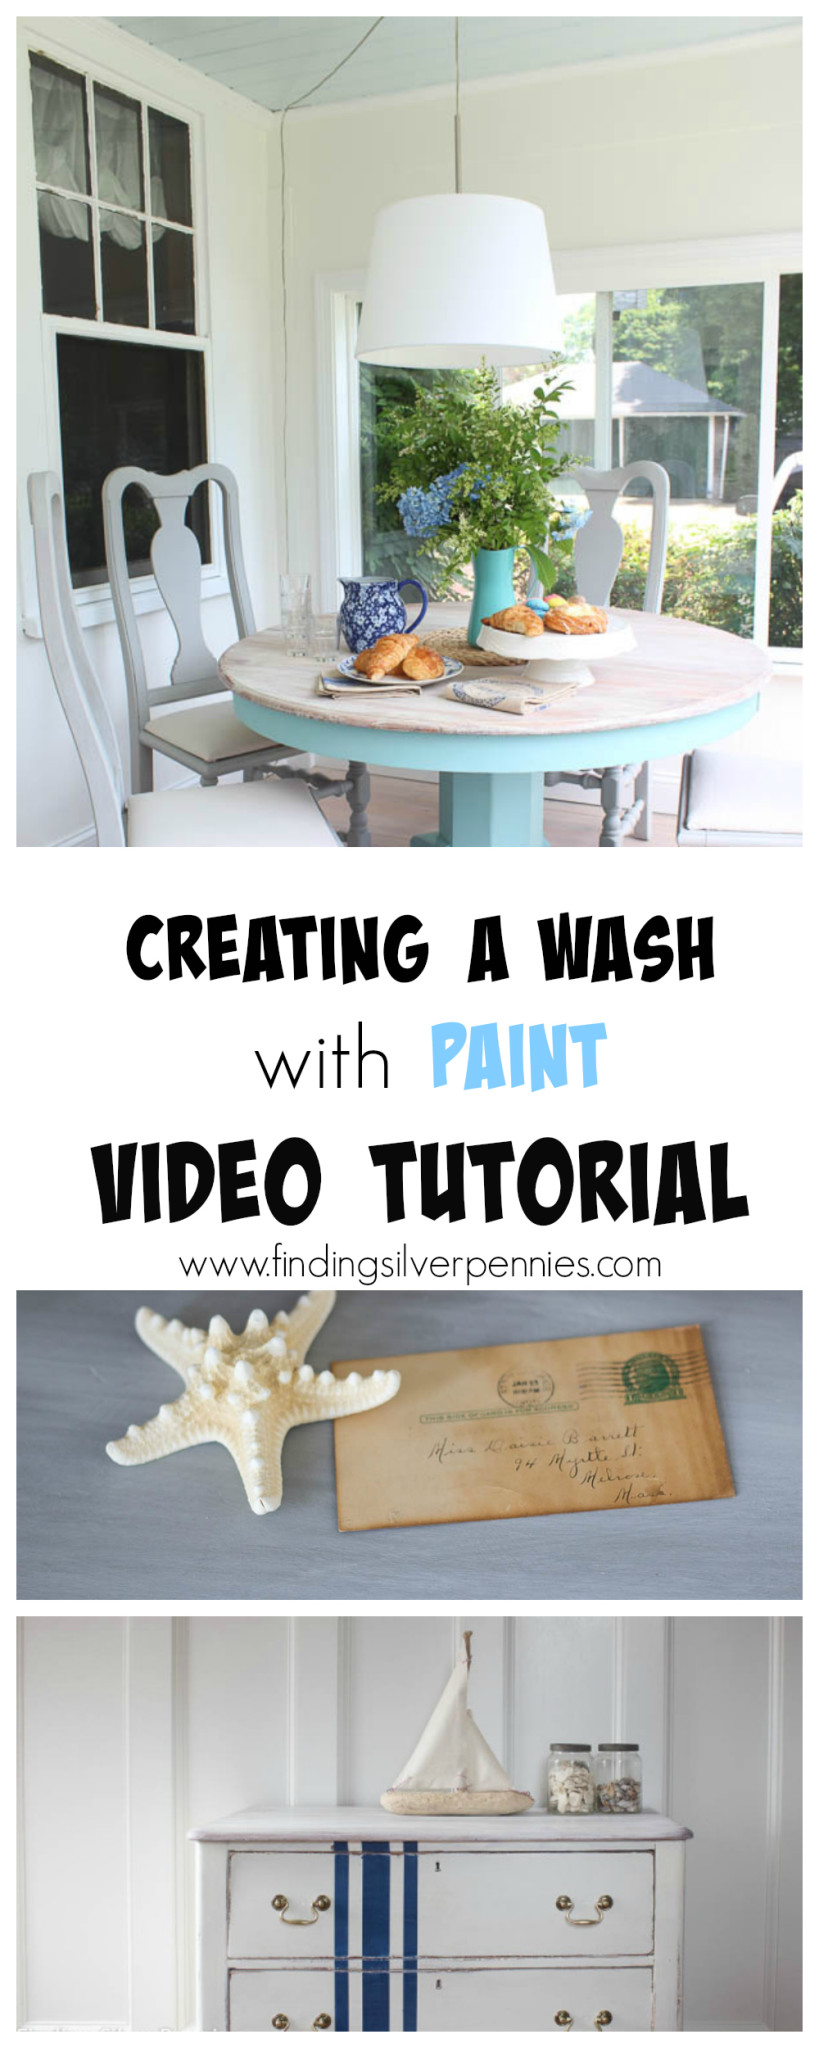 Creating A Wash with Paint